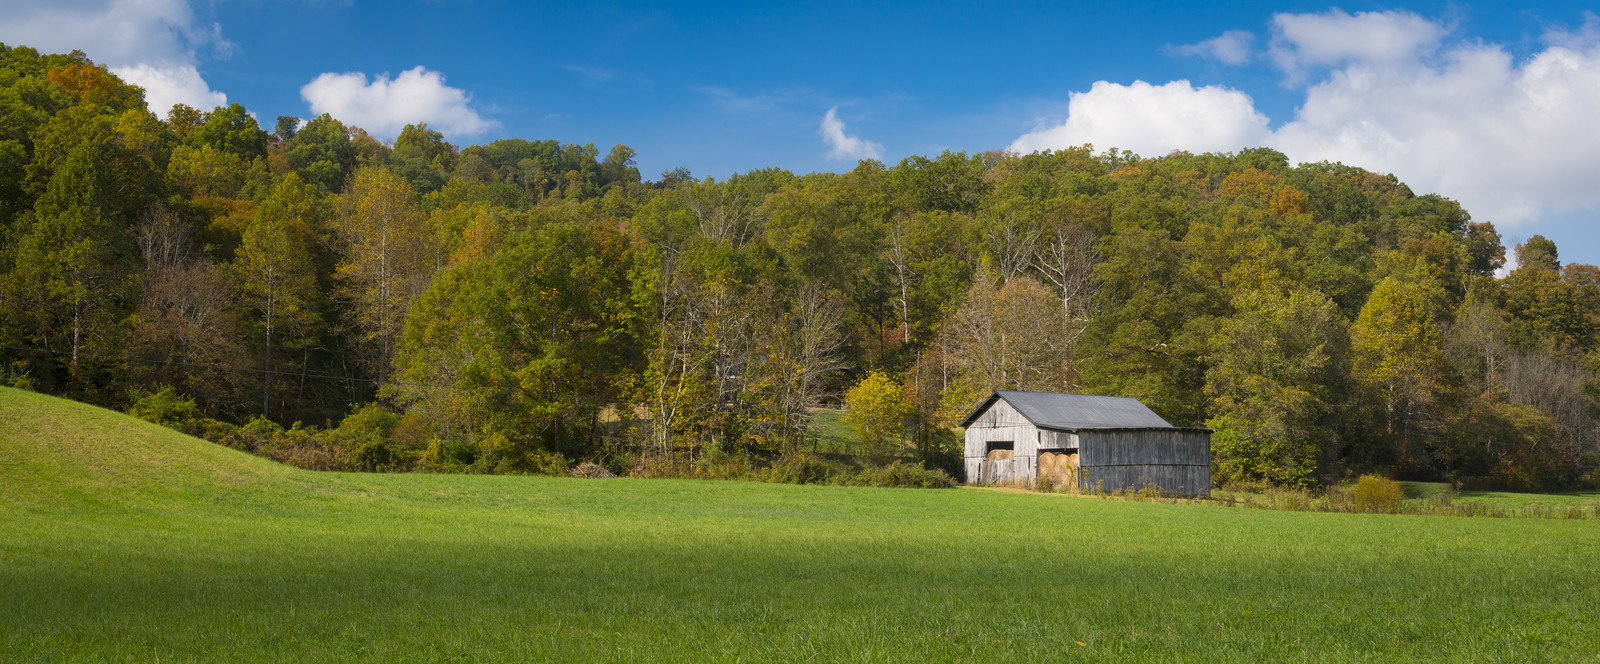 Old gray hay barn sitting at the edge of the woods and green grass fields in Berea Kentucky